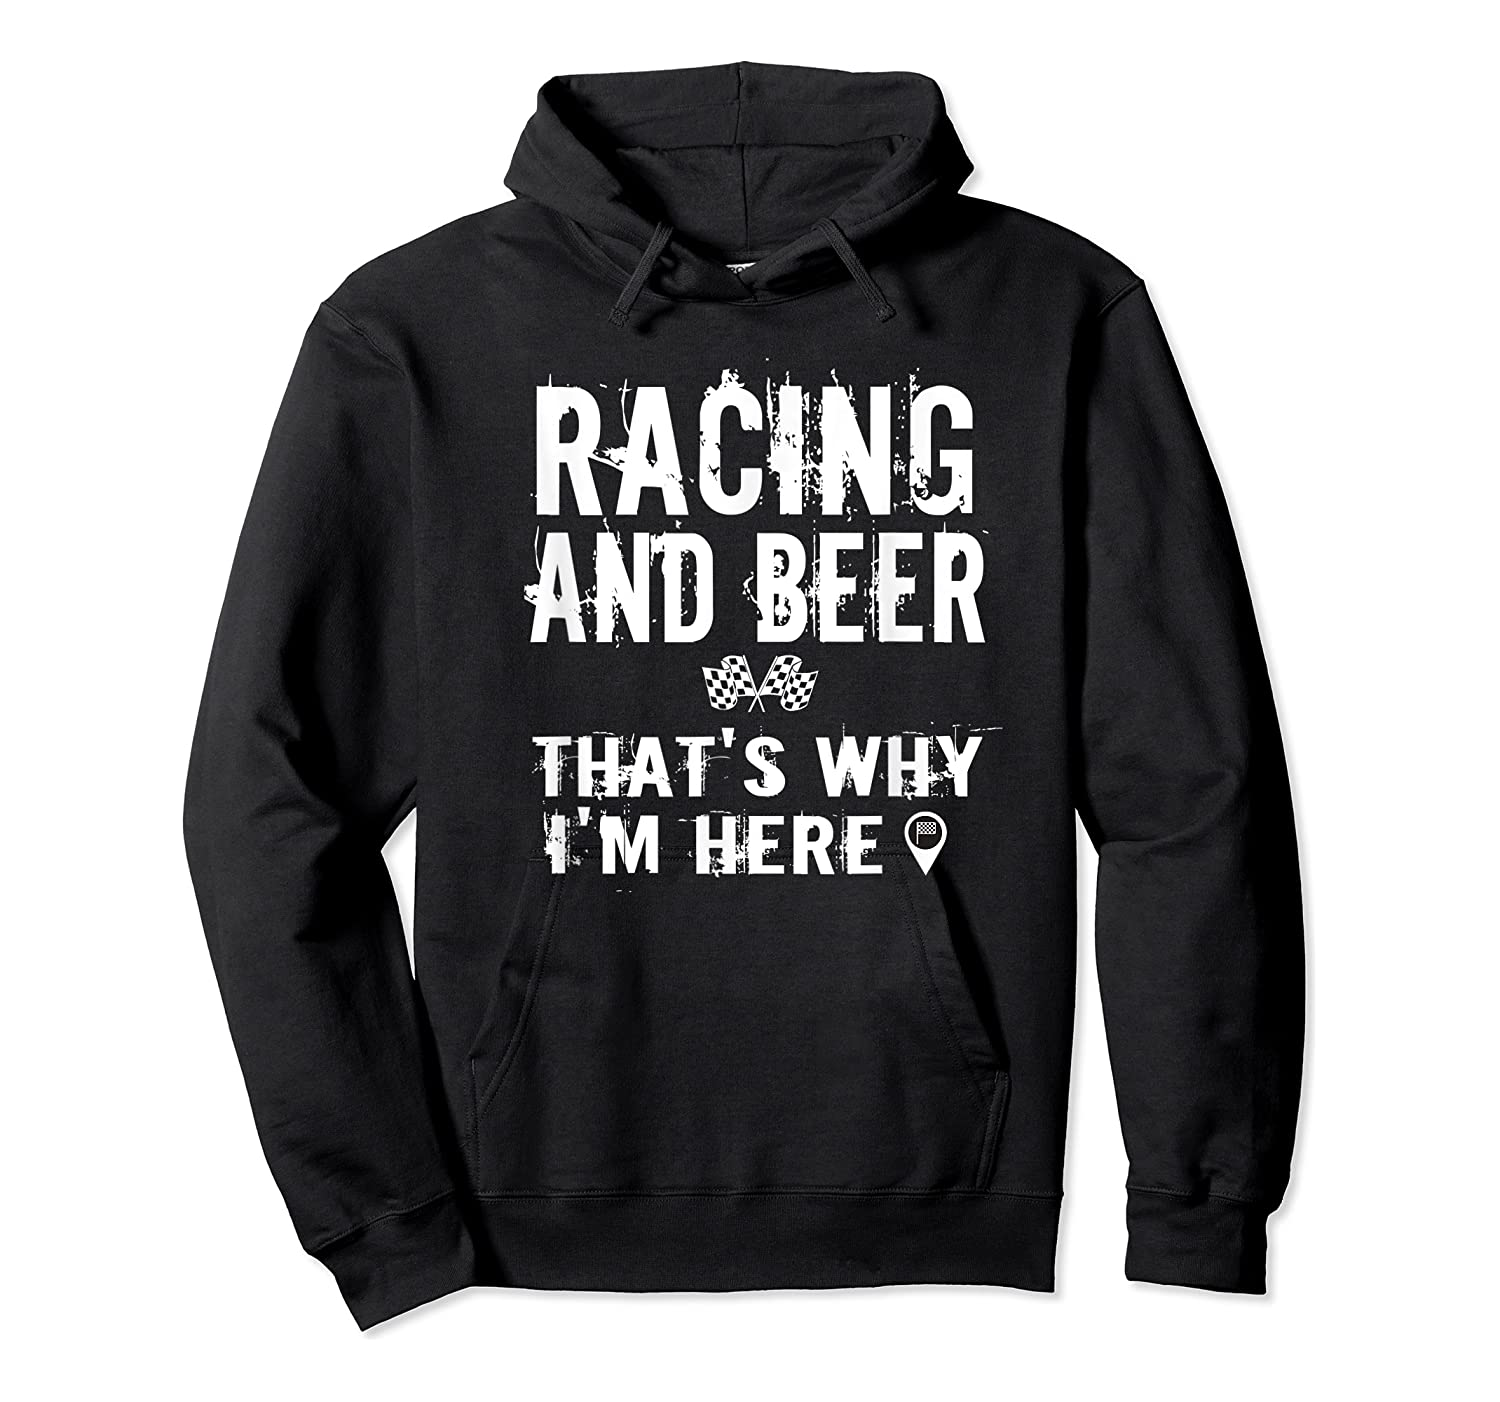 Race Car Track Apparel Racing And Beer That's Why I'm Here Shirts Unisex Pullover Hoodie